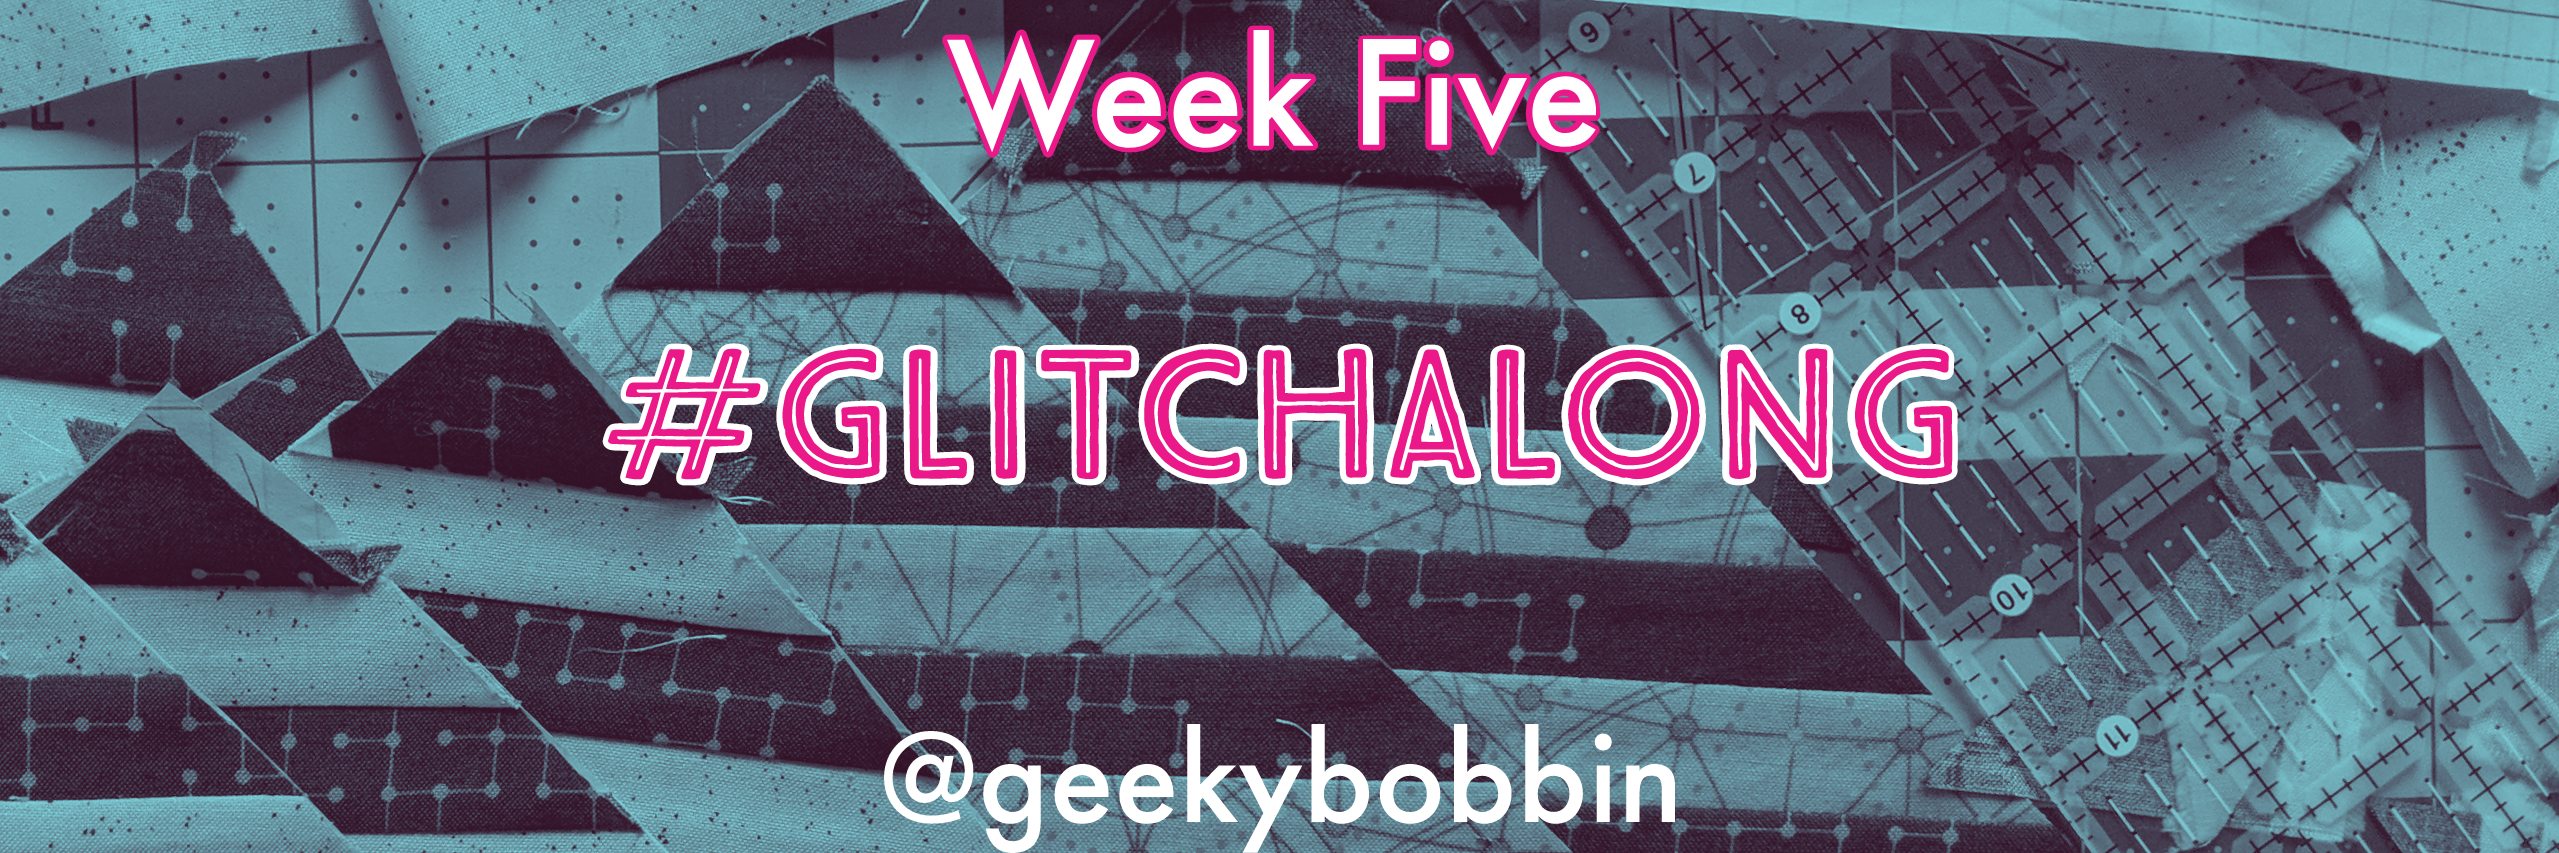 Glitch Along Week Five